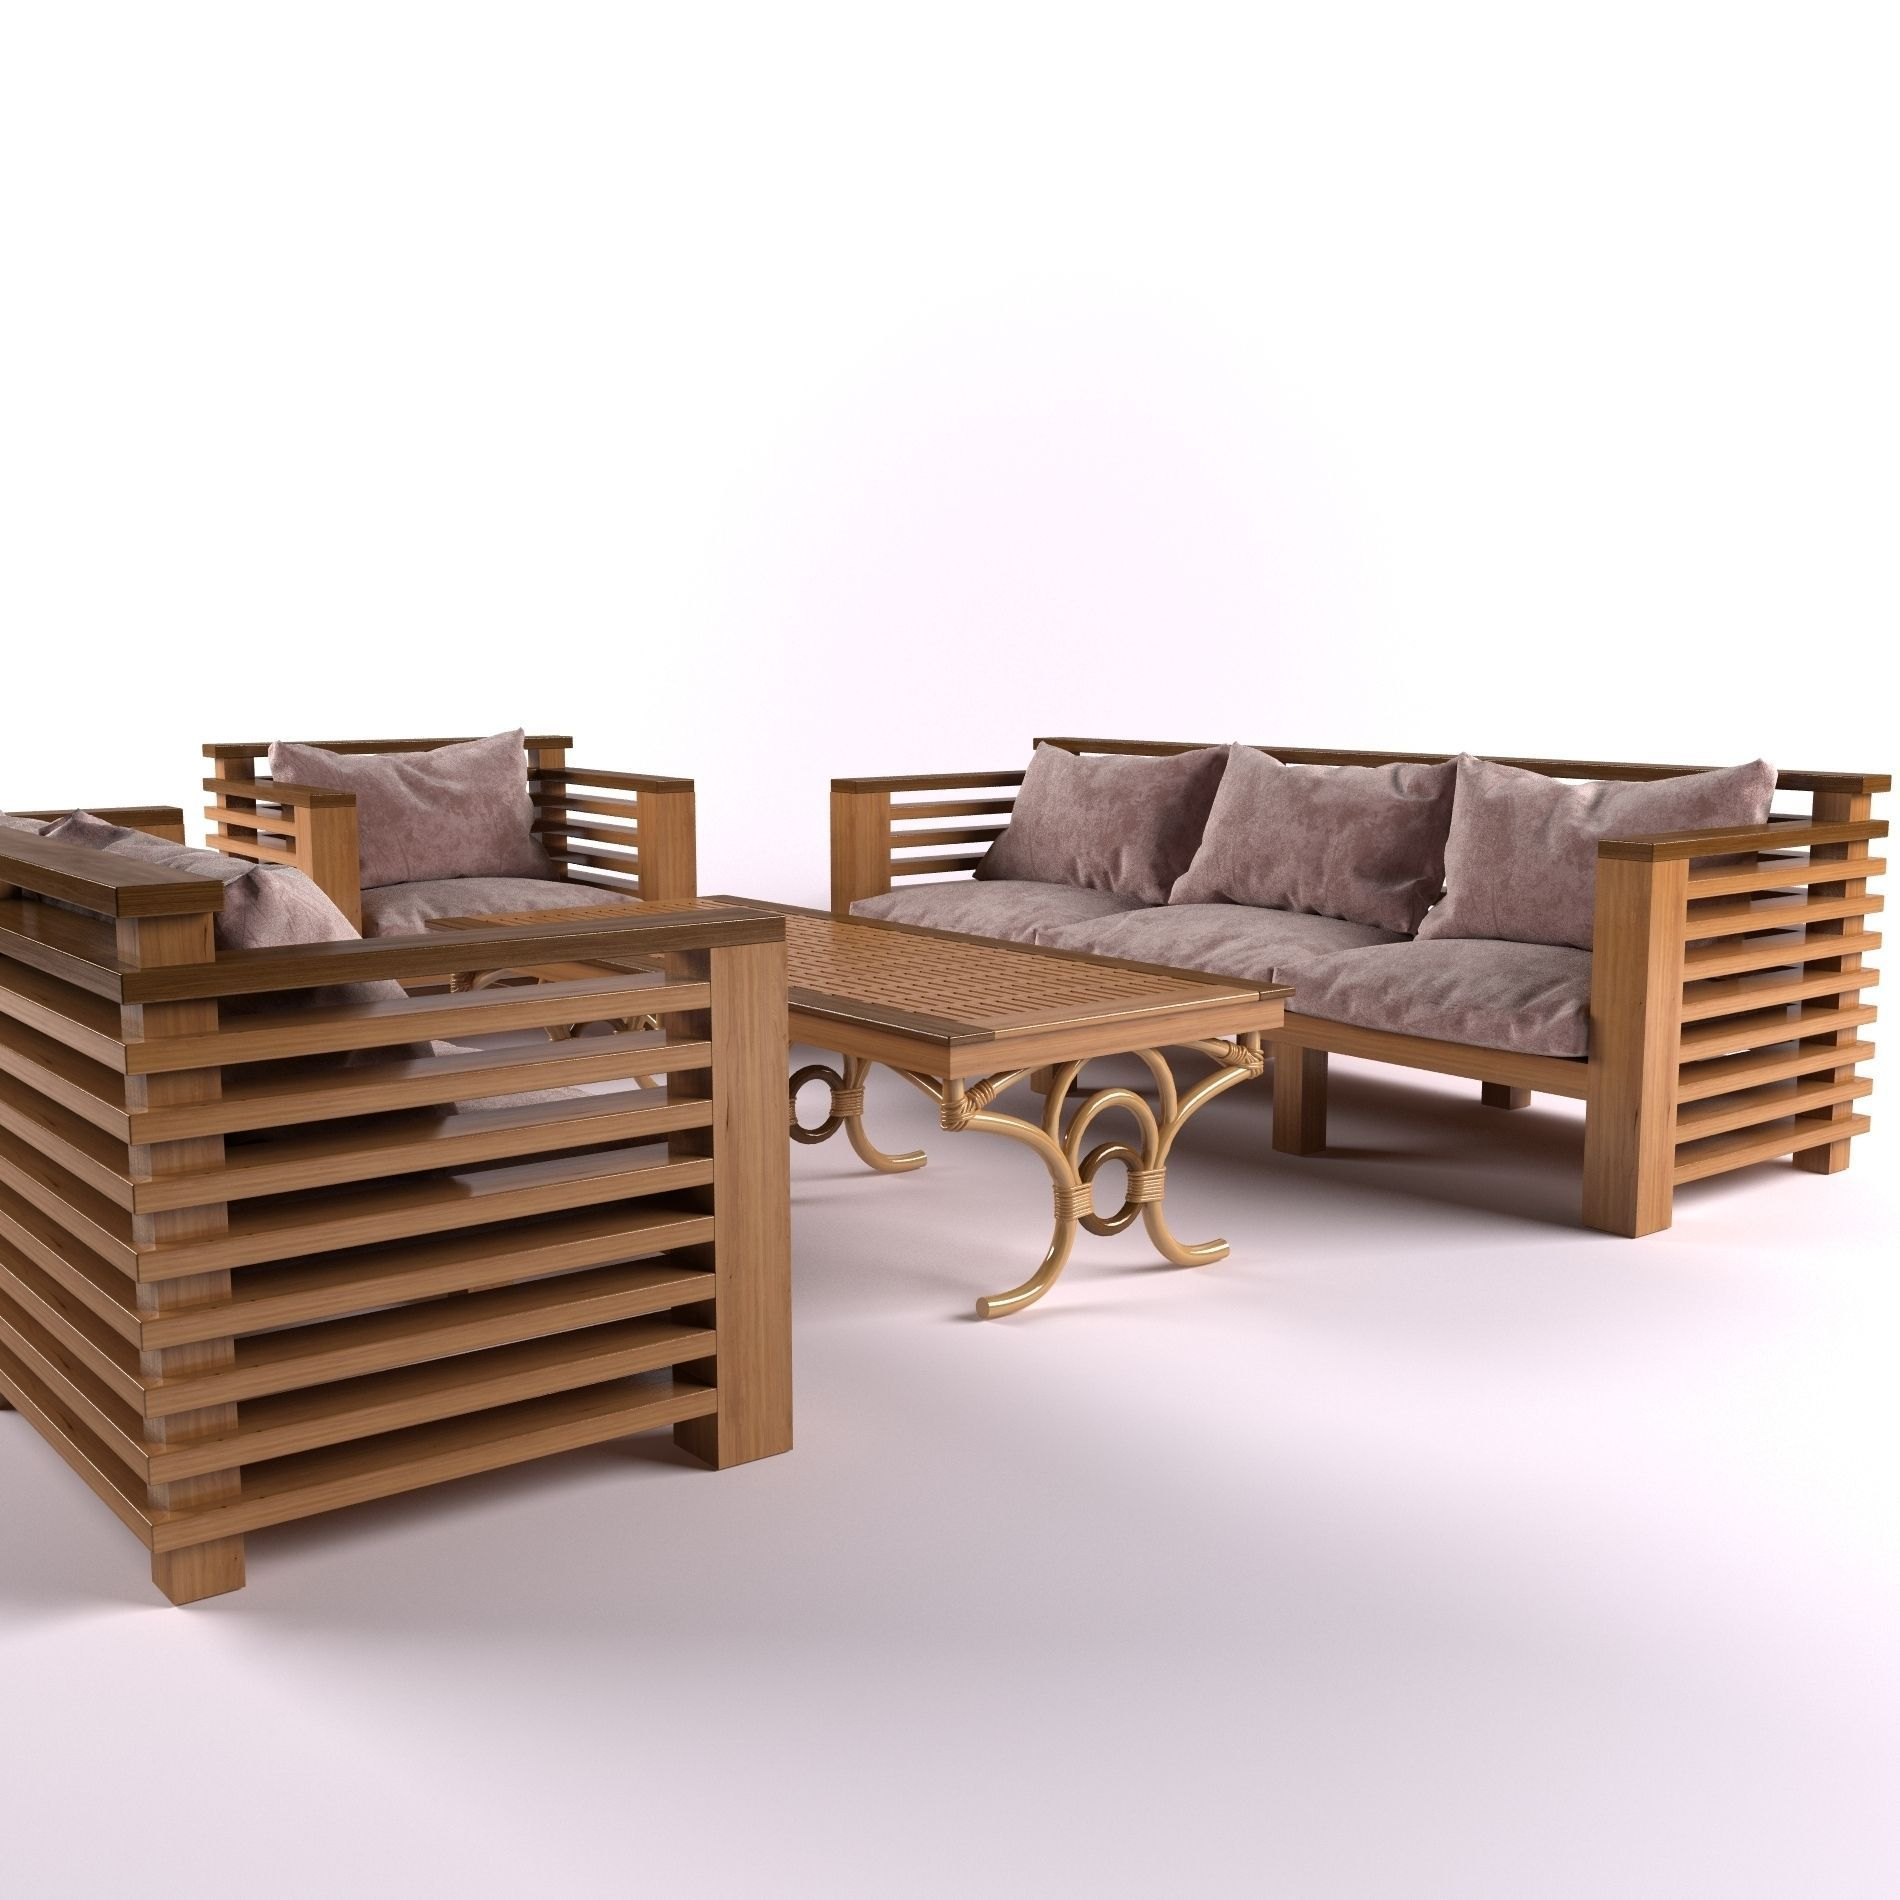 3d model garden furniture vr ar low poly max obj mtl. Black Bedroom Furniture Sets. Home Design Ideas